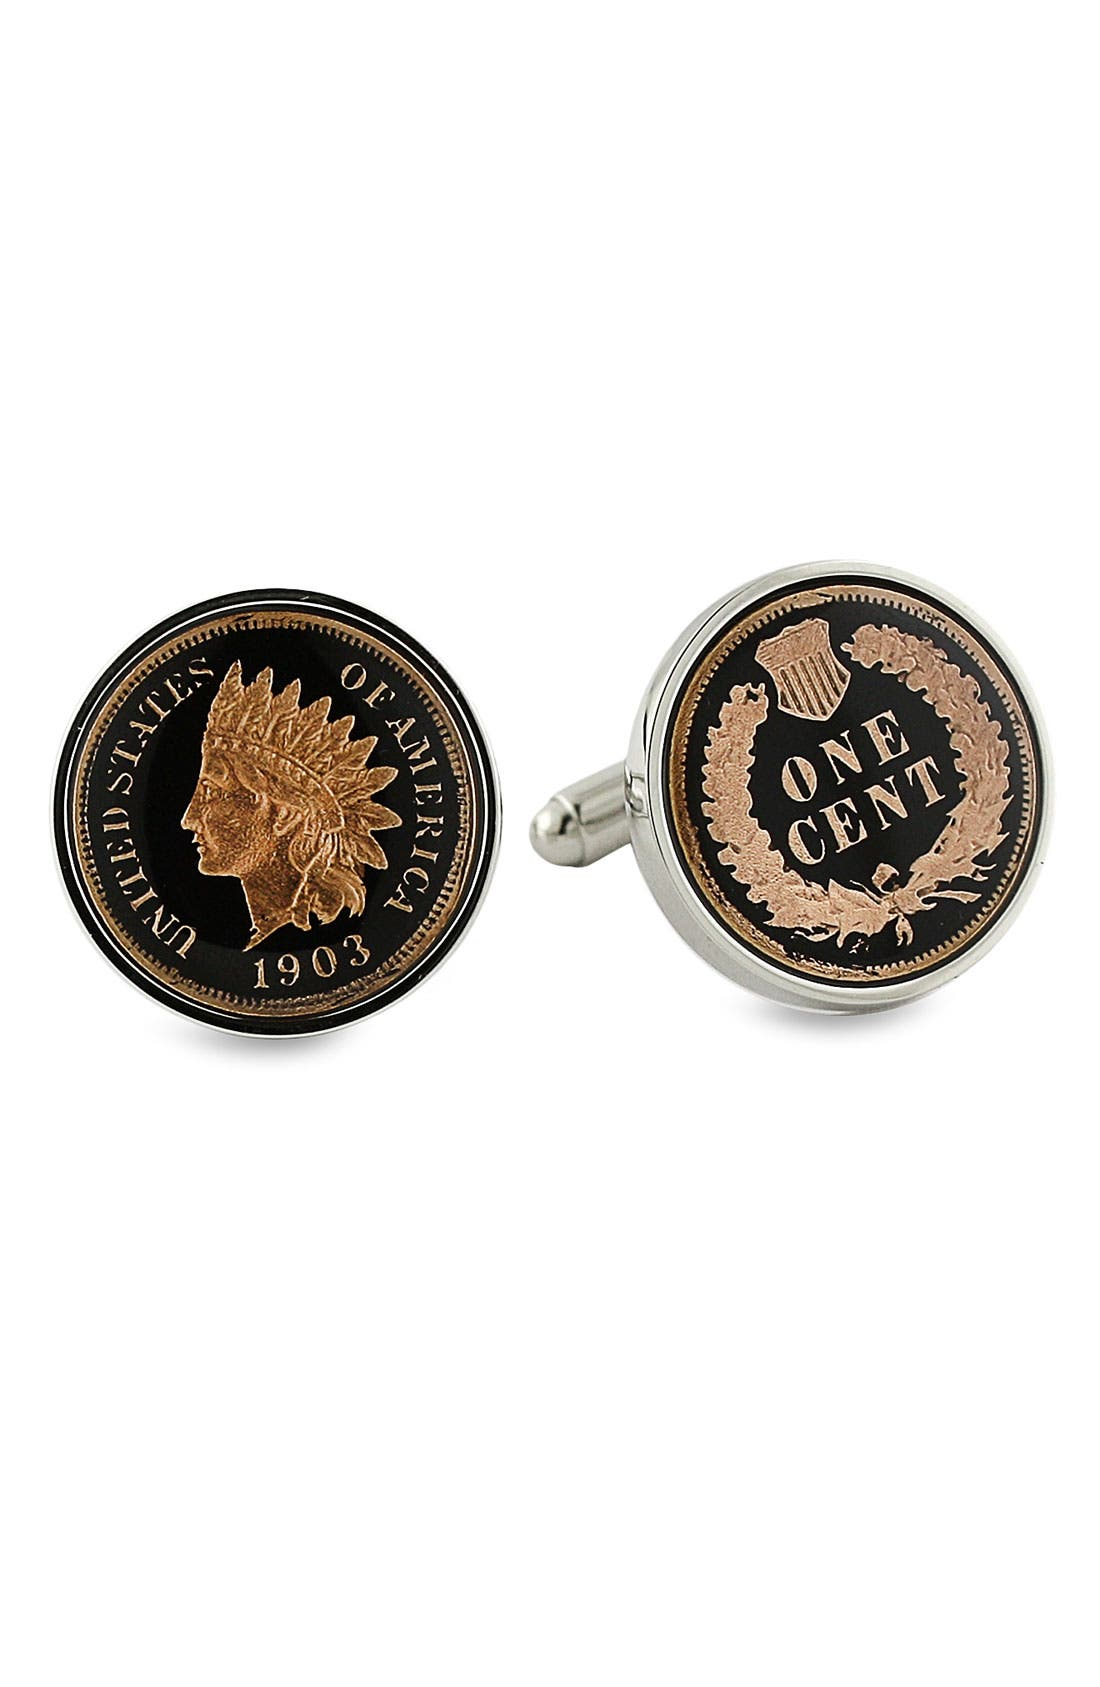 Main Image - David Donahue 'Collector Coin' Cuff Links